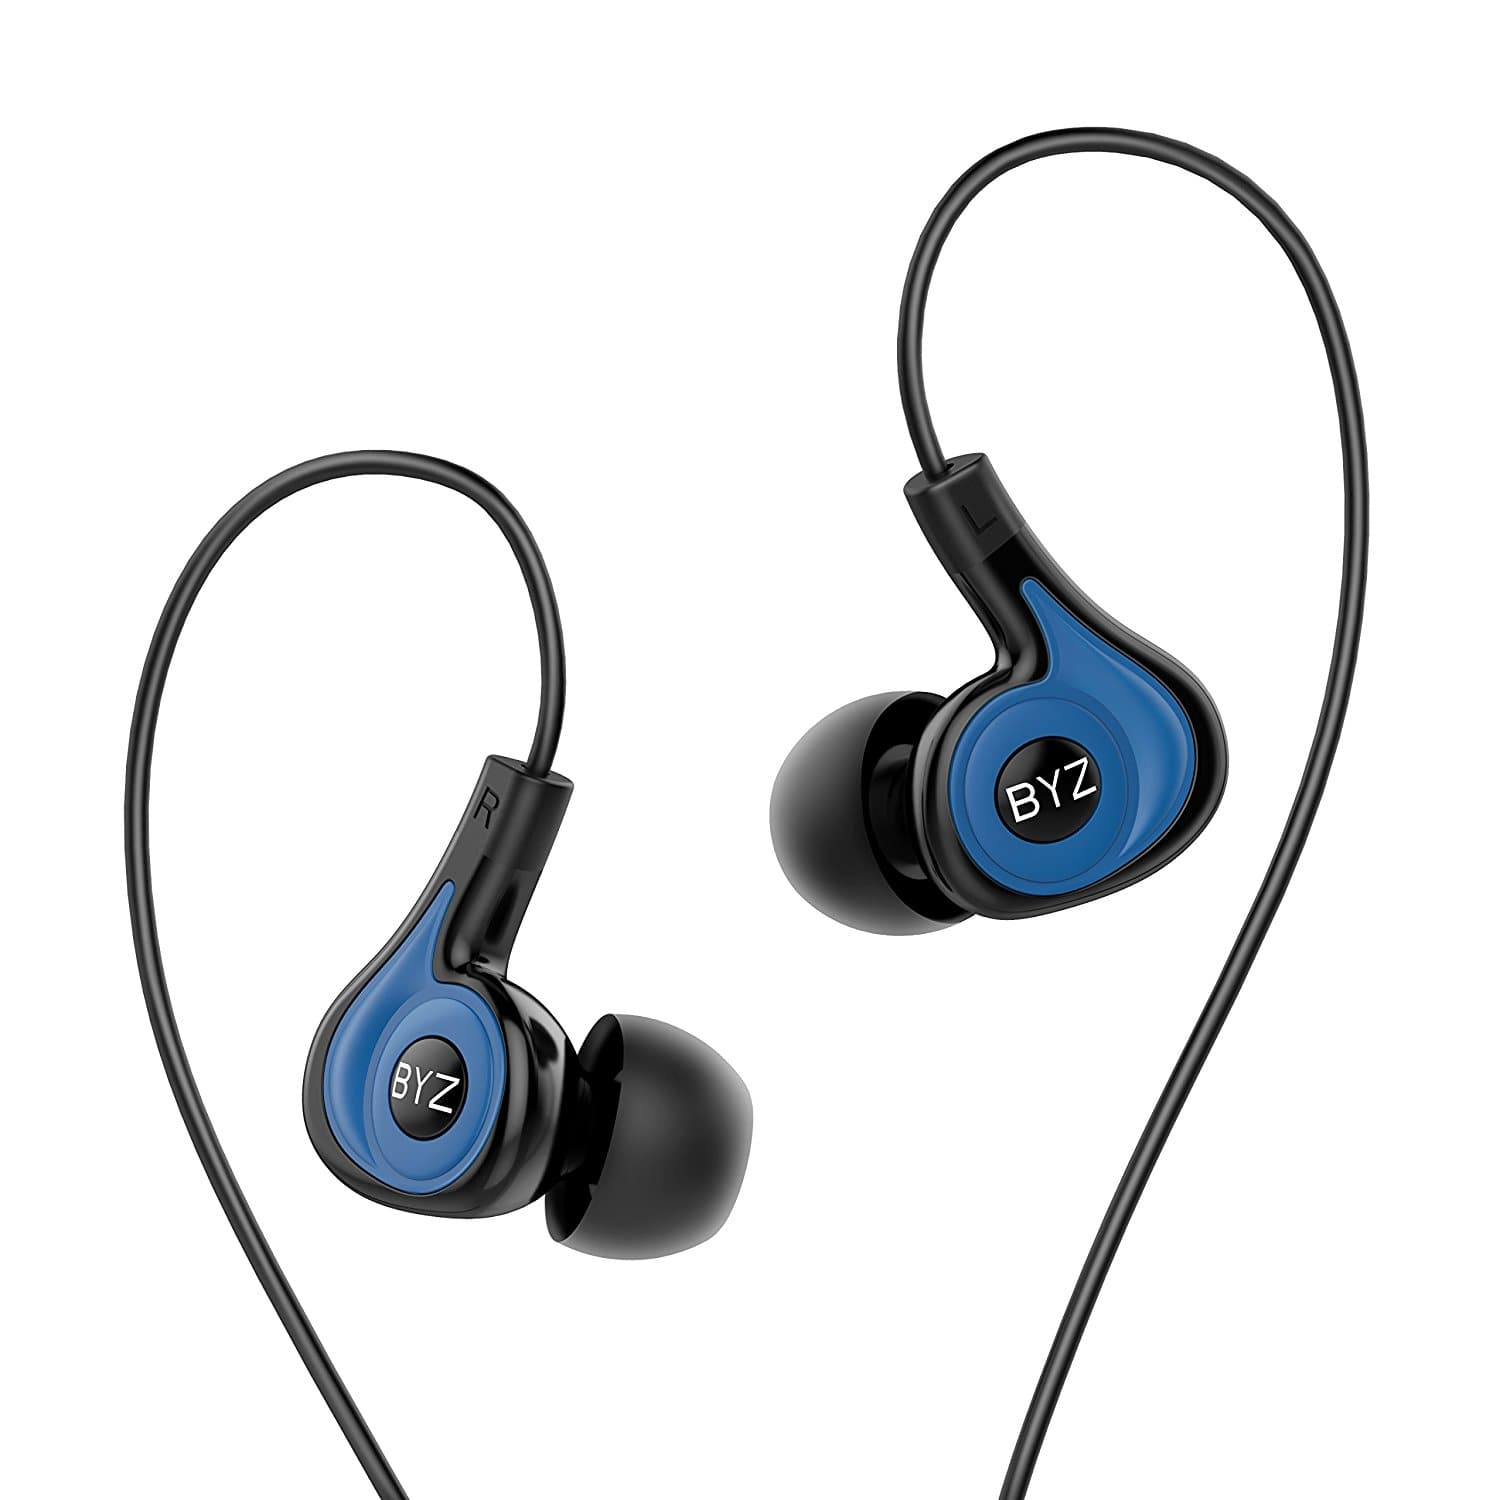 Earbuds with Microphone and Volume Control,in ear Running Headphones for $4.96 @ Amazon